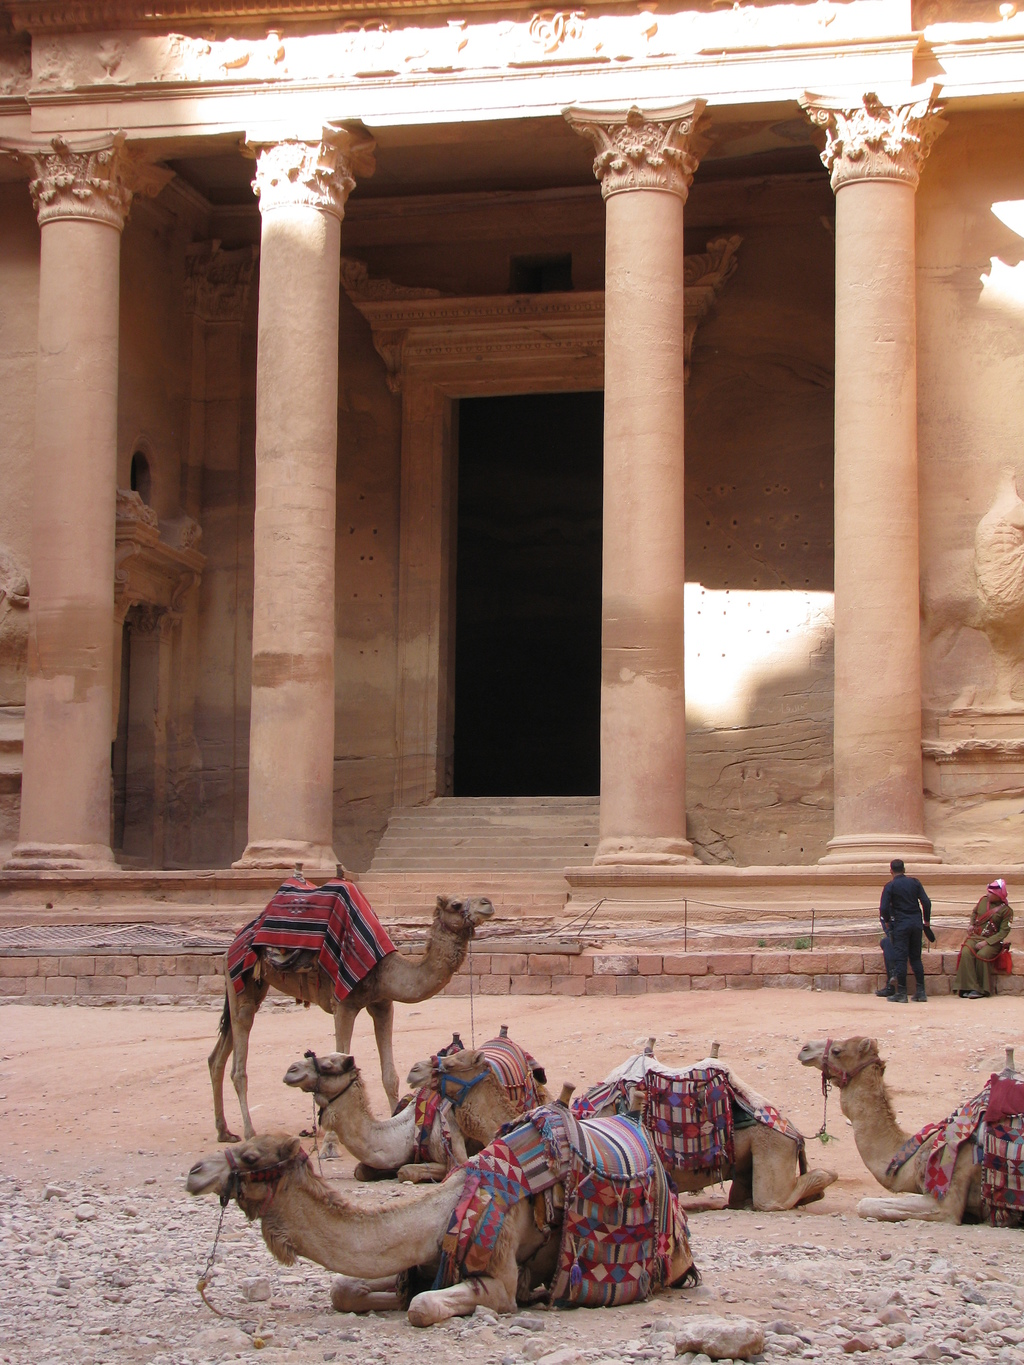 This April 23, 2016 photo shows camels in front of the Treasury building in Petra, the ancient rock-hewn city that is Jordan's blockbus...